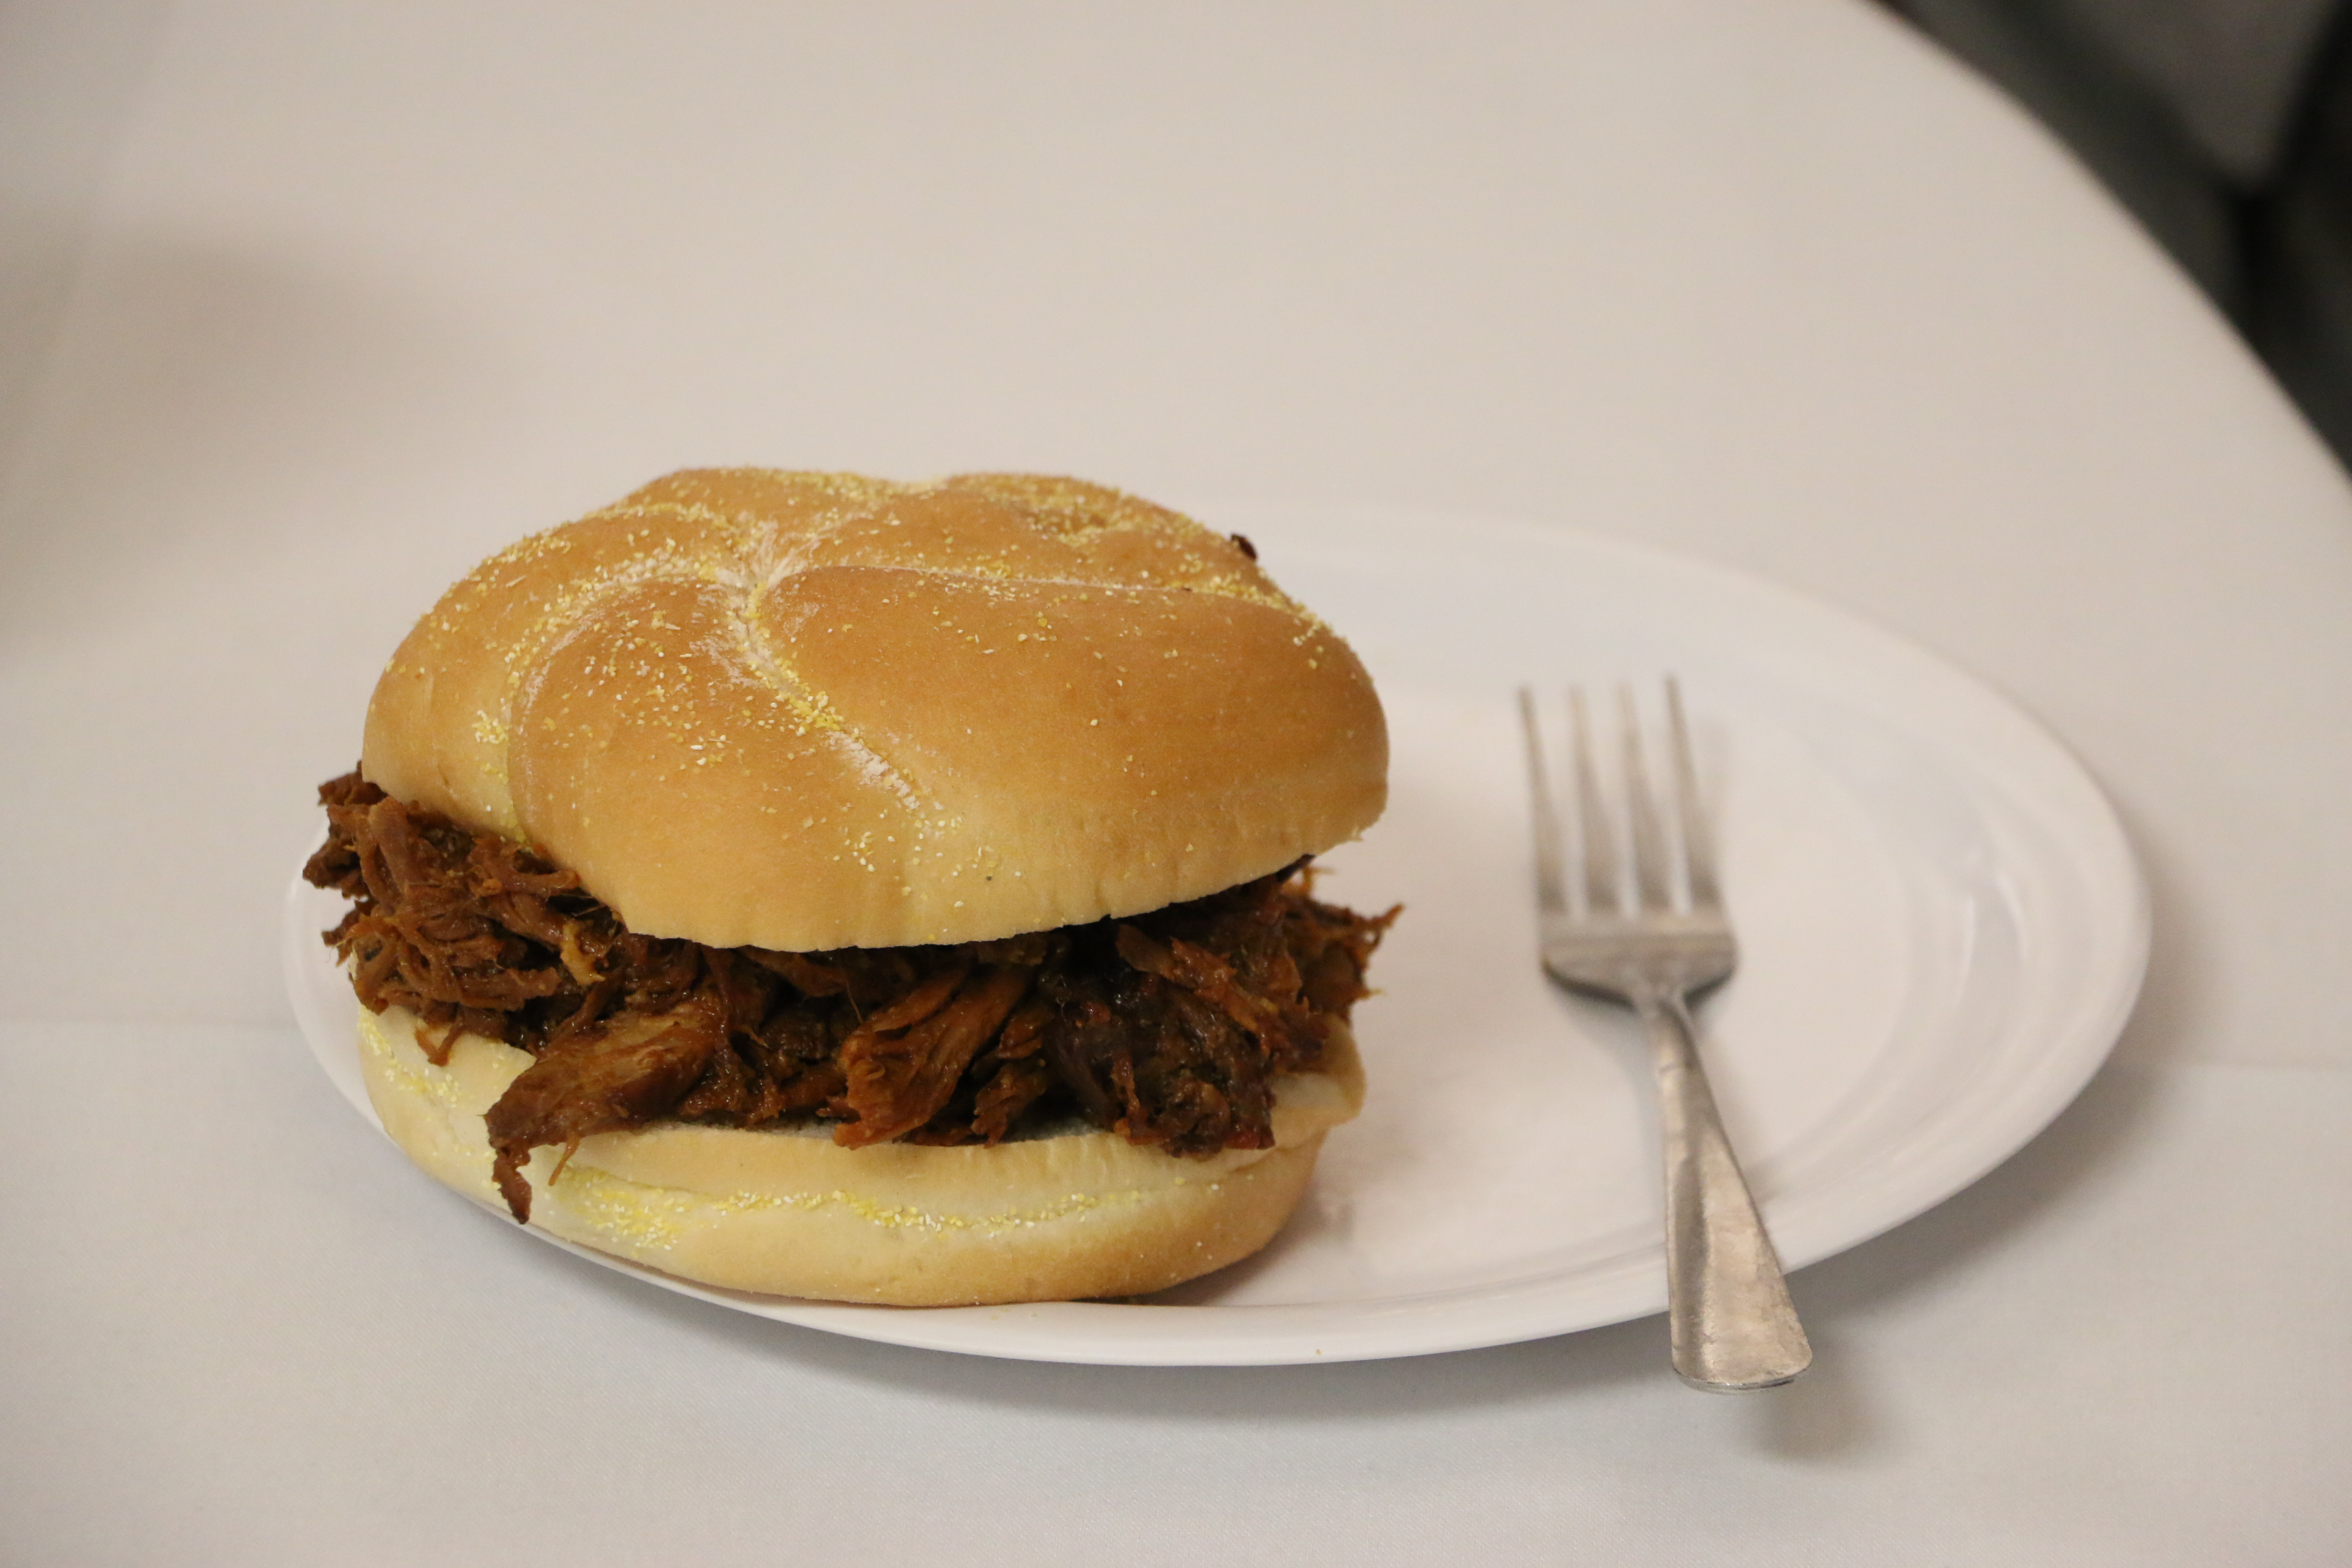 Roast beef in a fresh bun on a white plate with a fork.